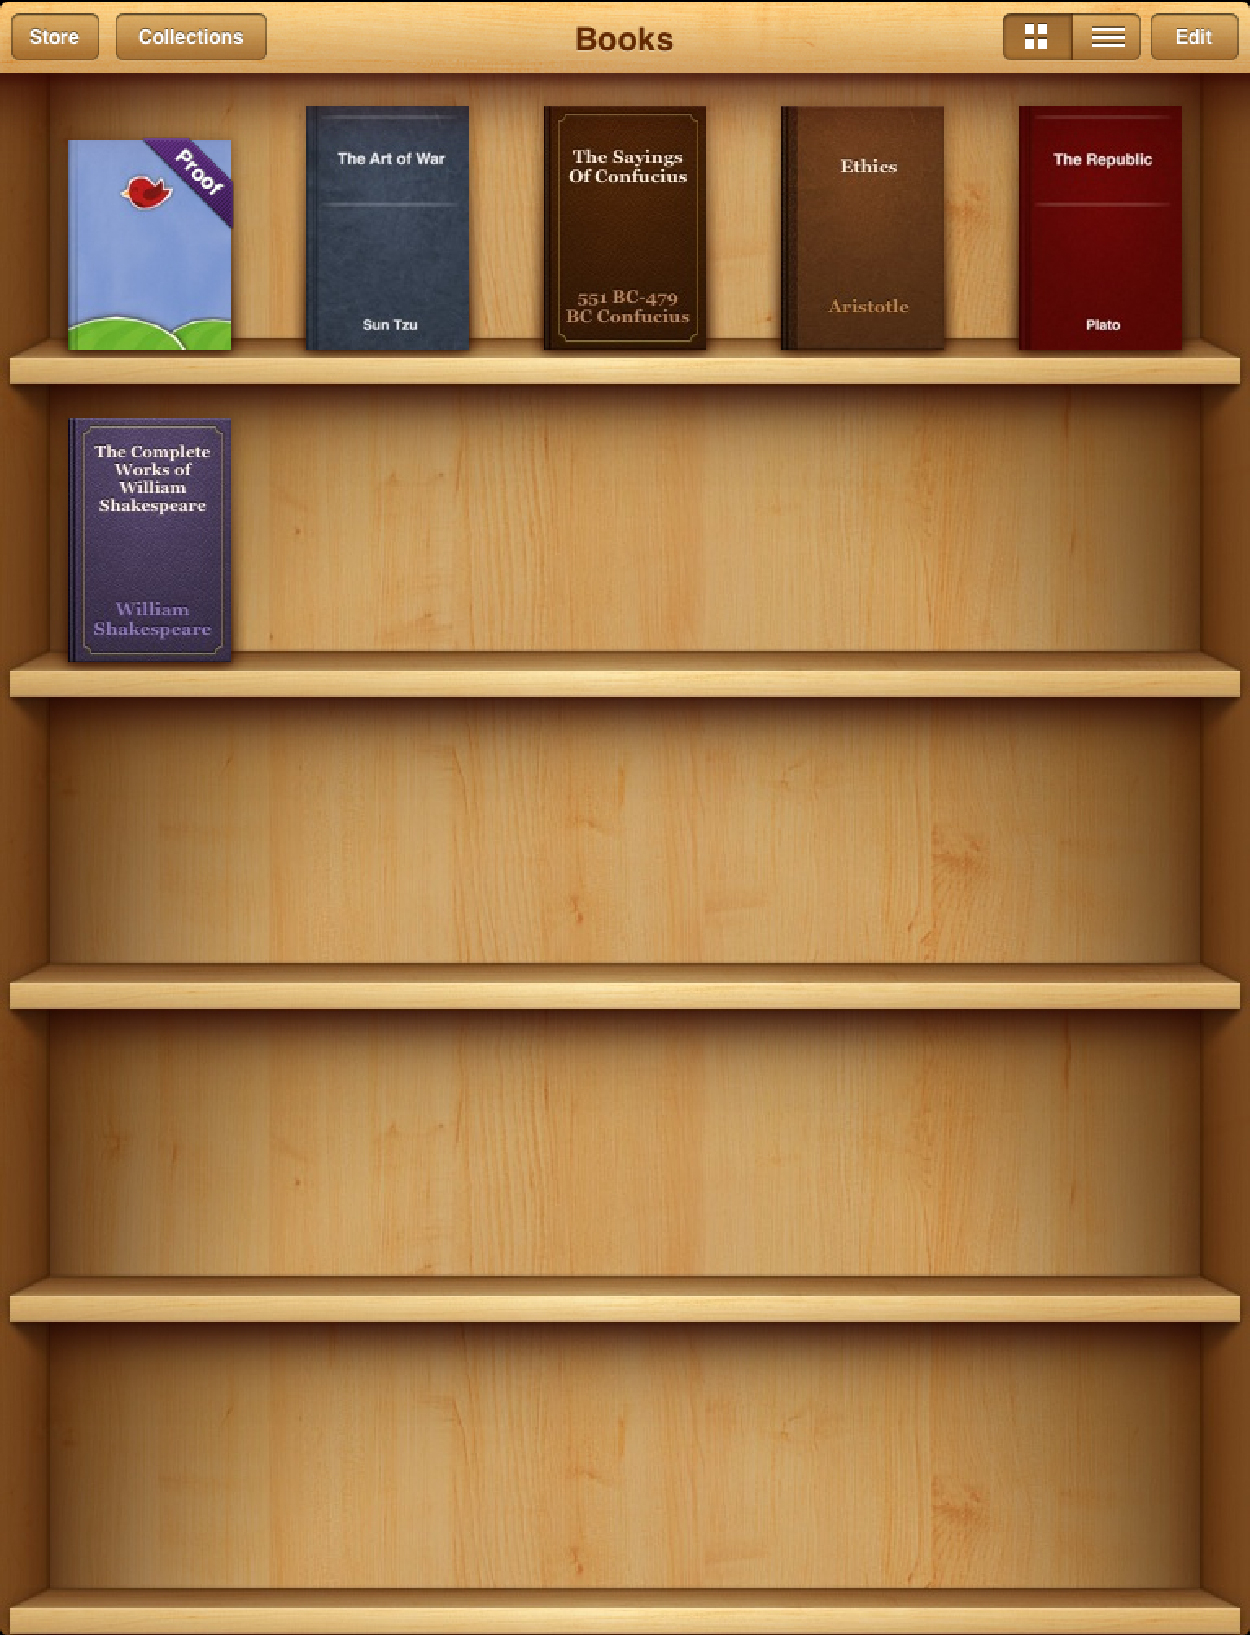 Screenshot: bookshelf of iBooks app with a few books on the shelf